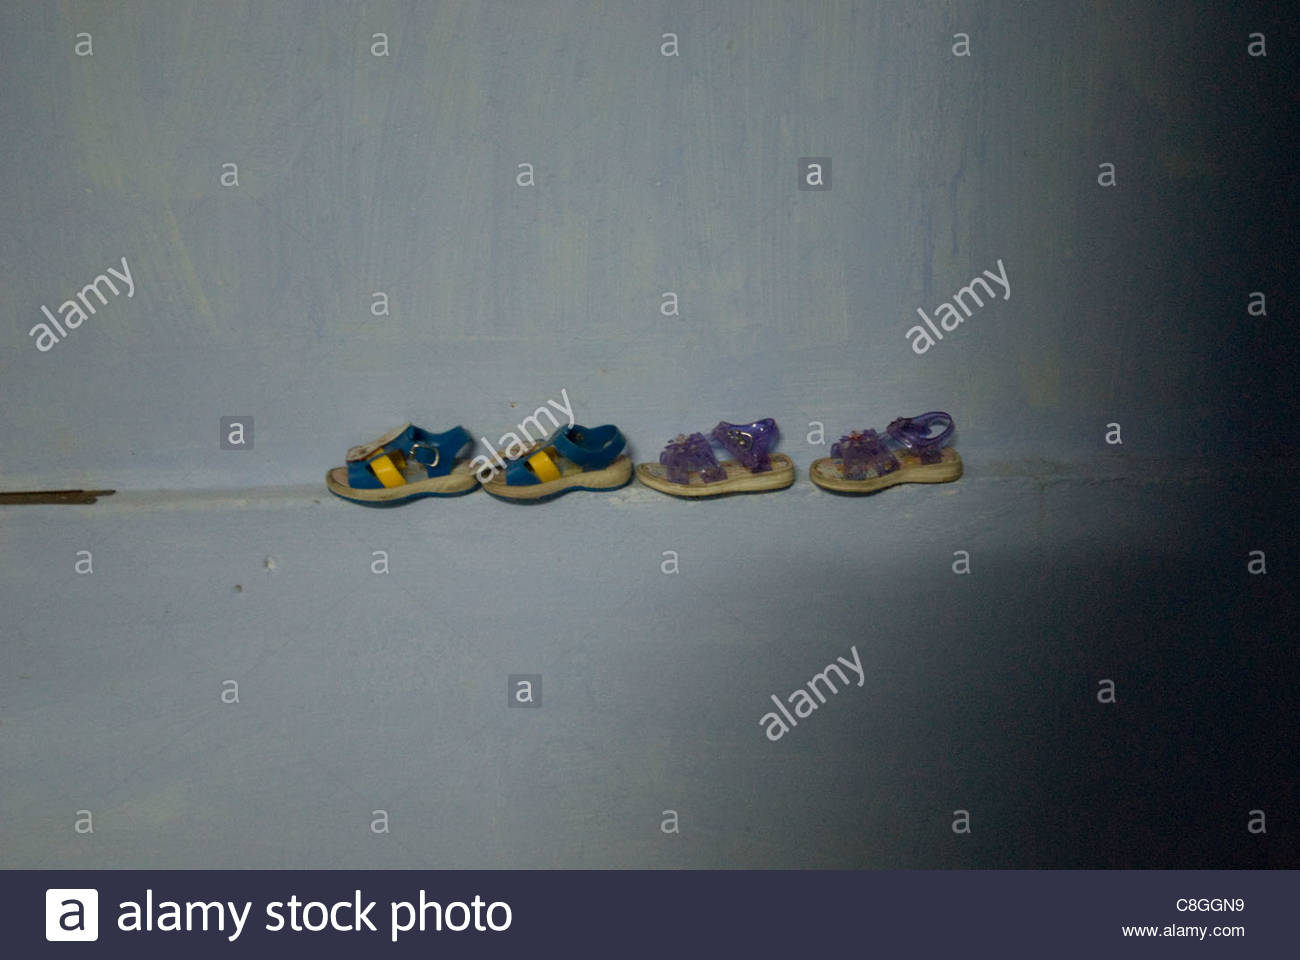 Sandals in a row. - Stock Image